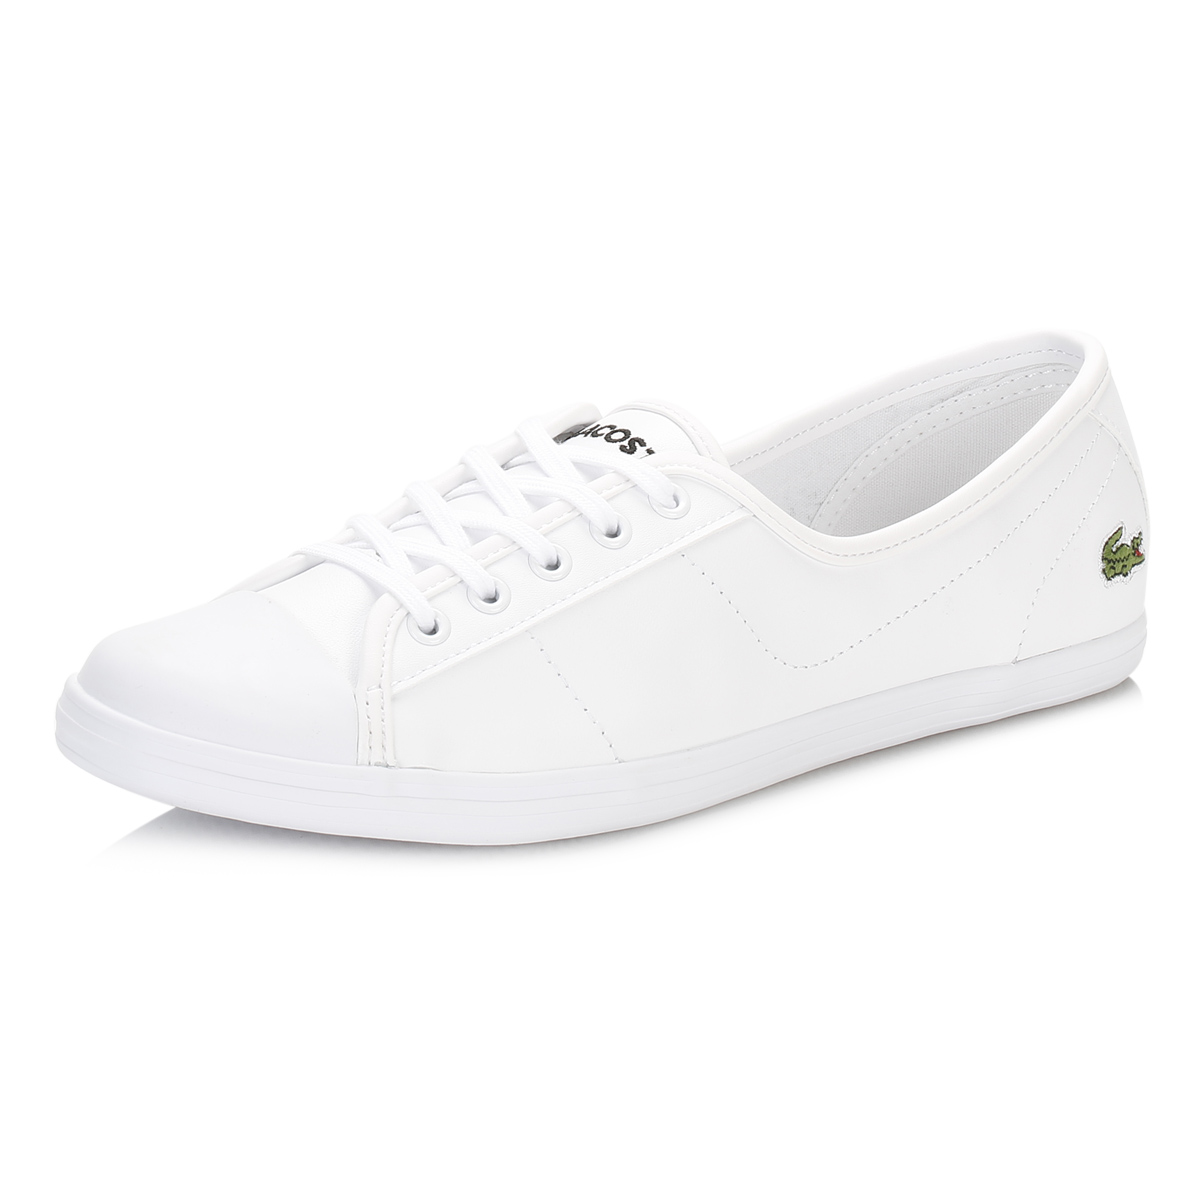 6016b1be5c6df Details about Lacoste Womens Trainers White Ziane BL 1 SPW Leather Lace Up  Shoes Casual Flats